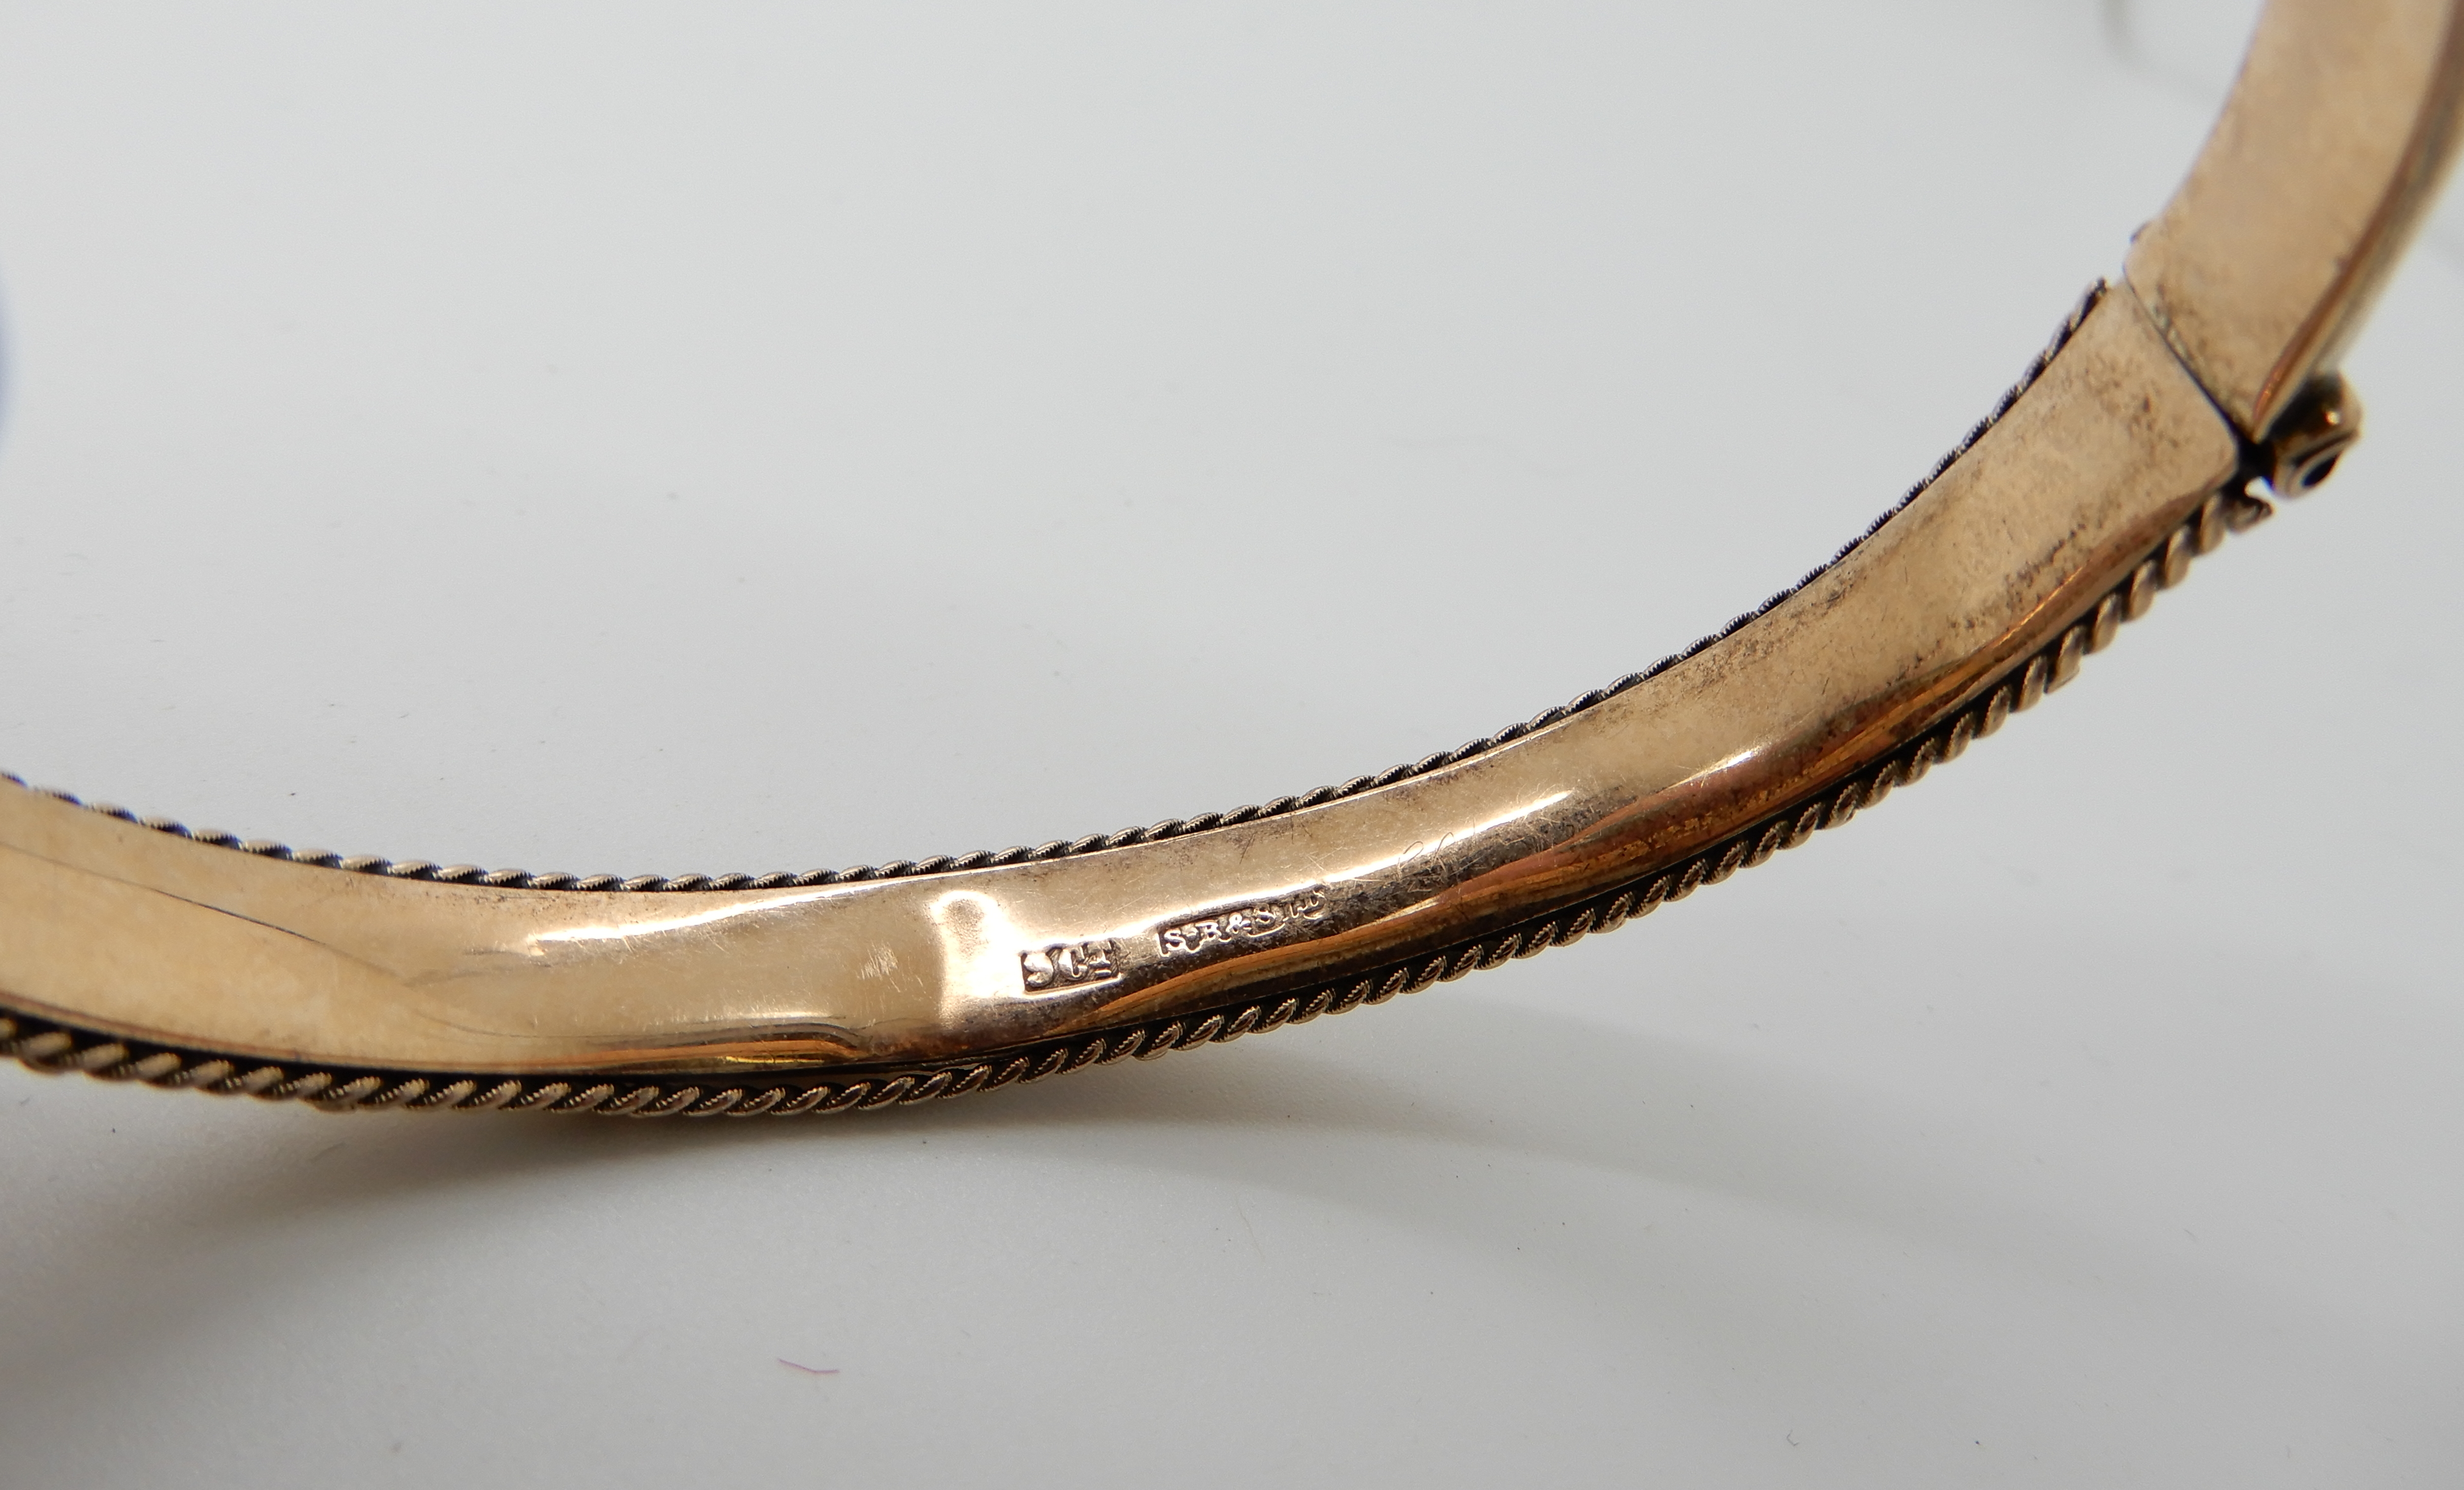 Lot 25 - A 9ct gold bangle, inner dimensions 6cm x 5cm, weight 8.6gms Condition Report: Available upon